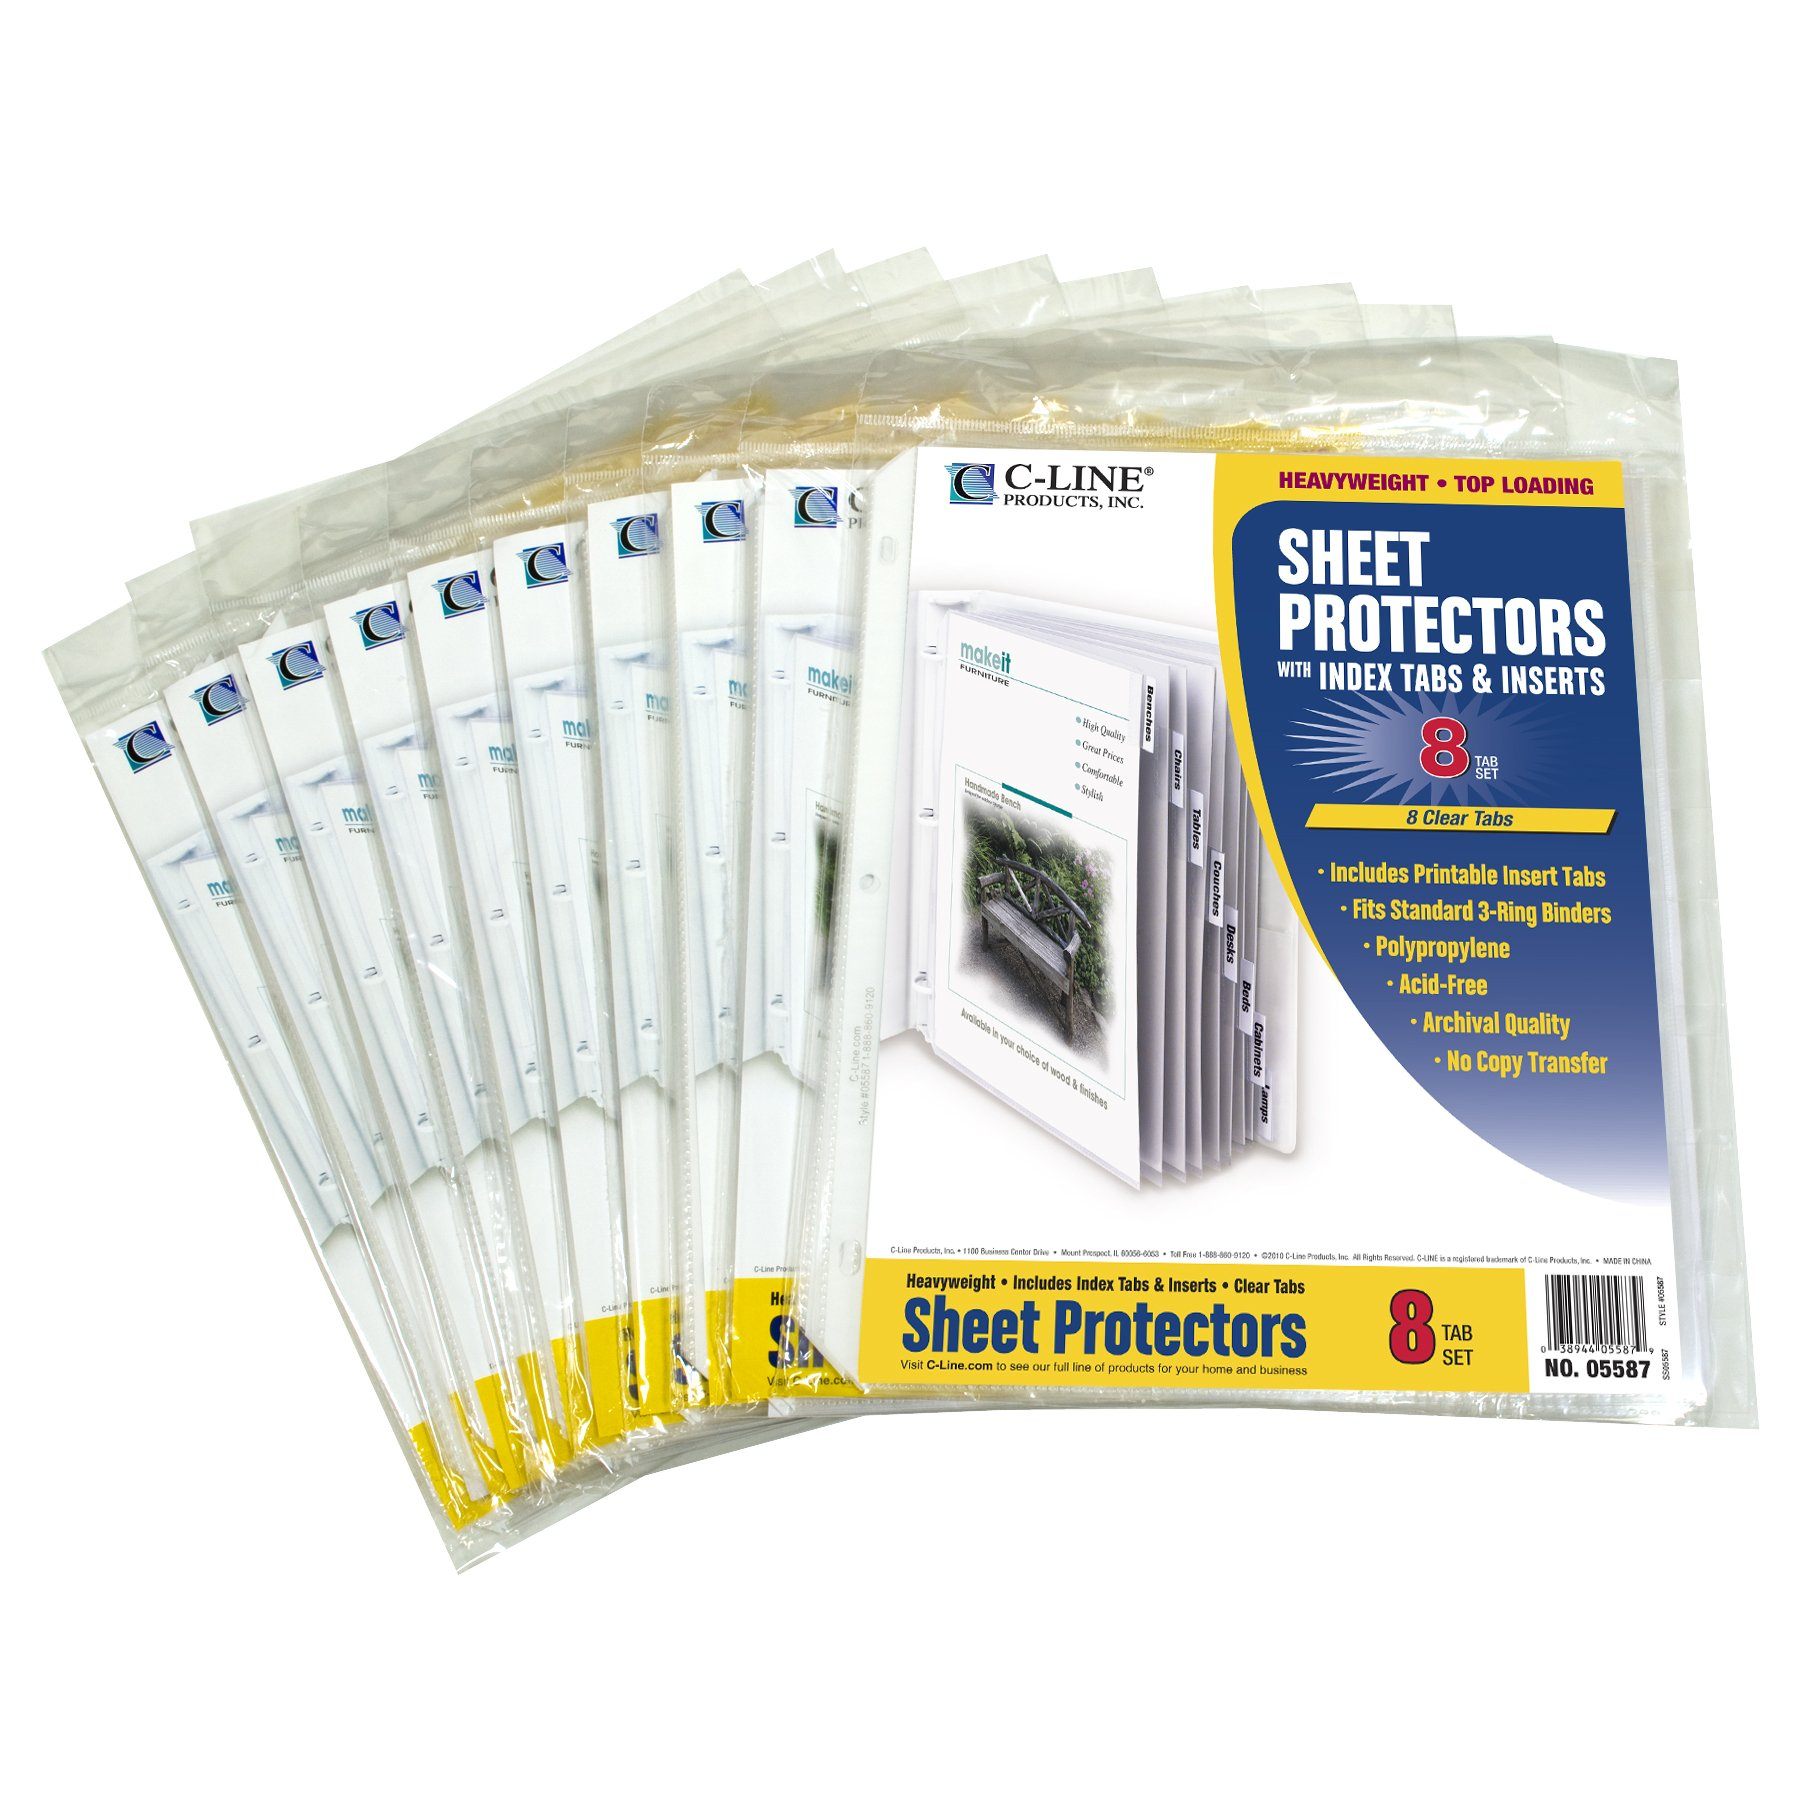 C-Line Polypropylene Sheet Protector with Index Tabs, Clear Tabs, 11 x 8.5 Inches, Ten 8-Tab Sets (05587-10) by C-Line